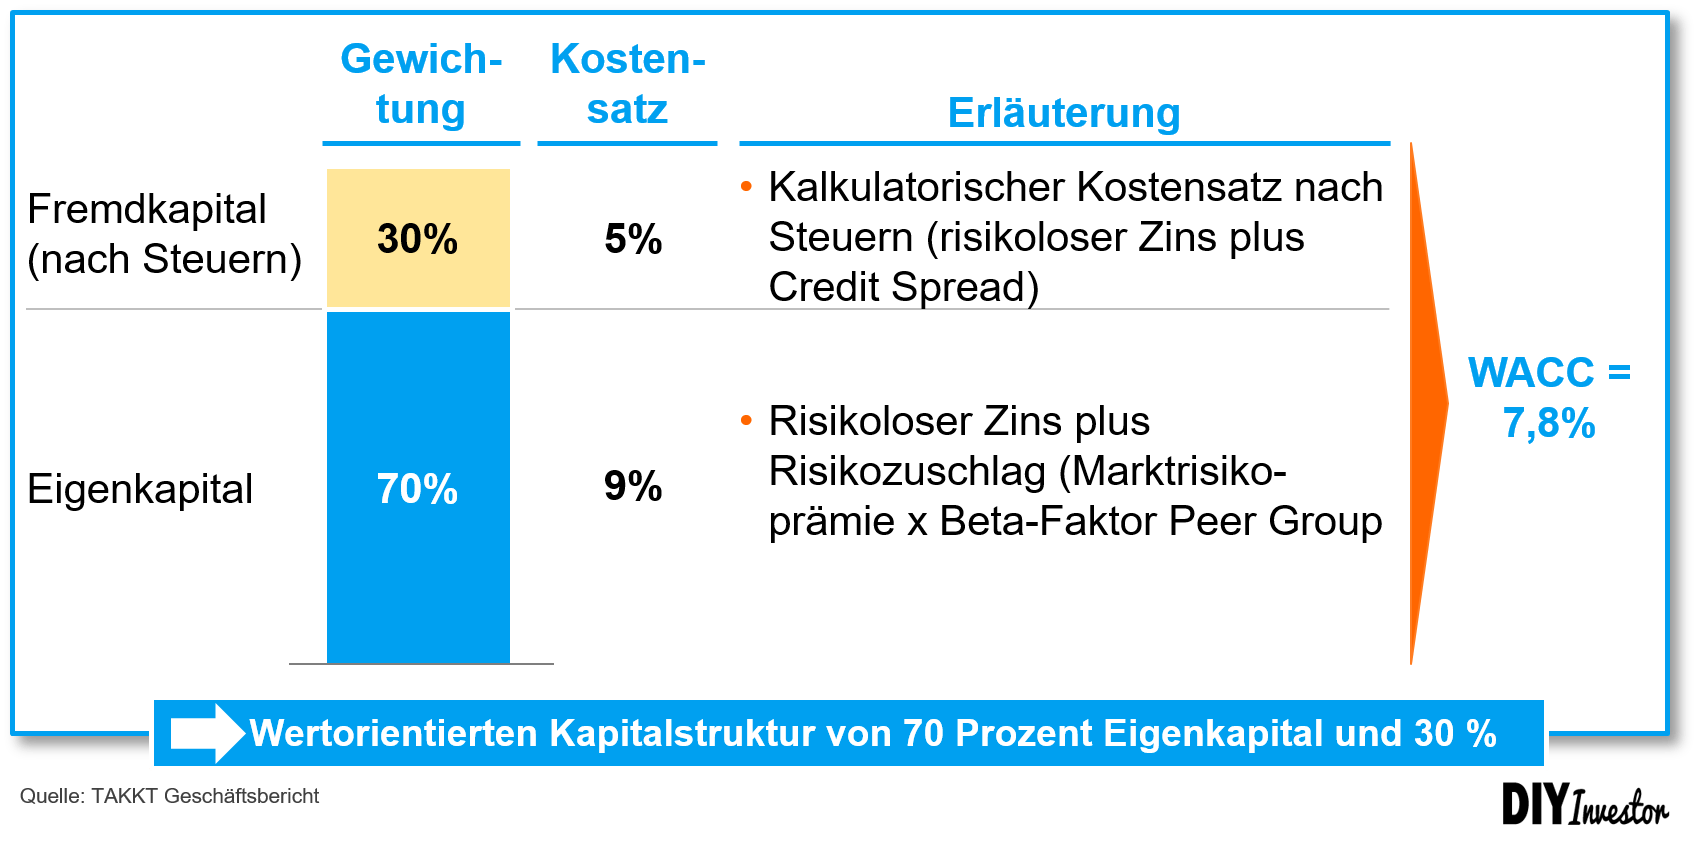 Economic Profit - WACC Berechnung